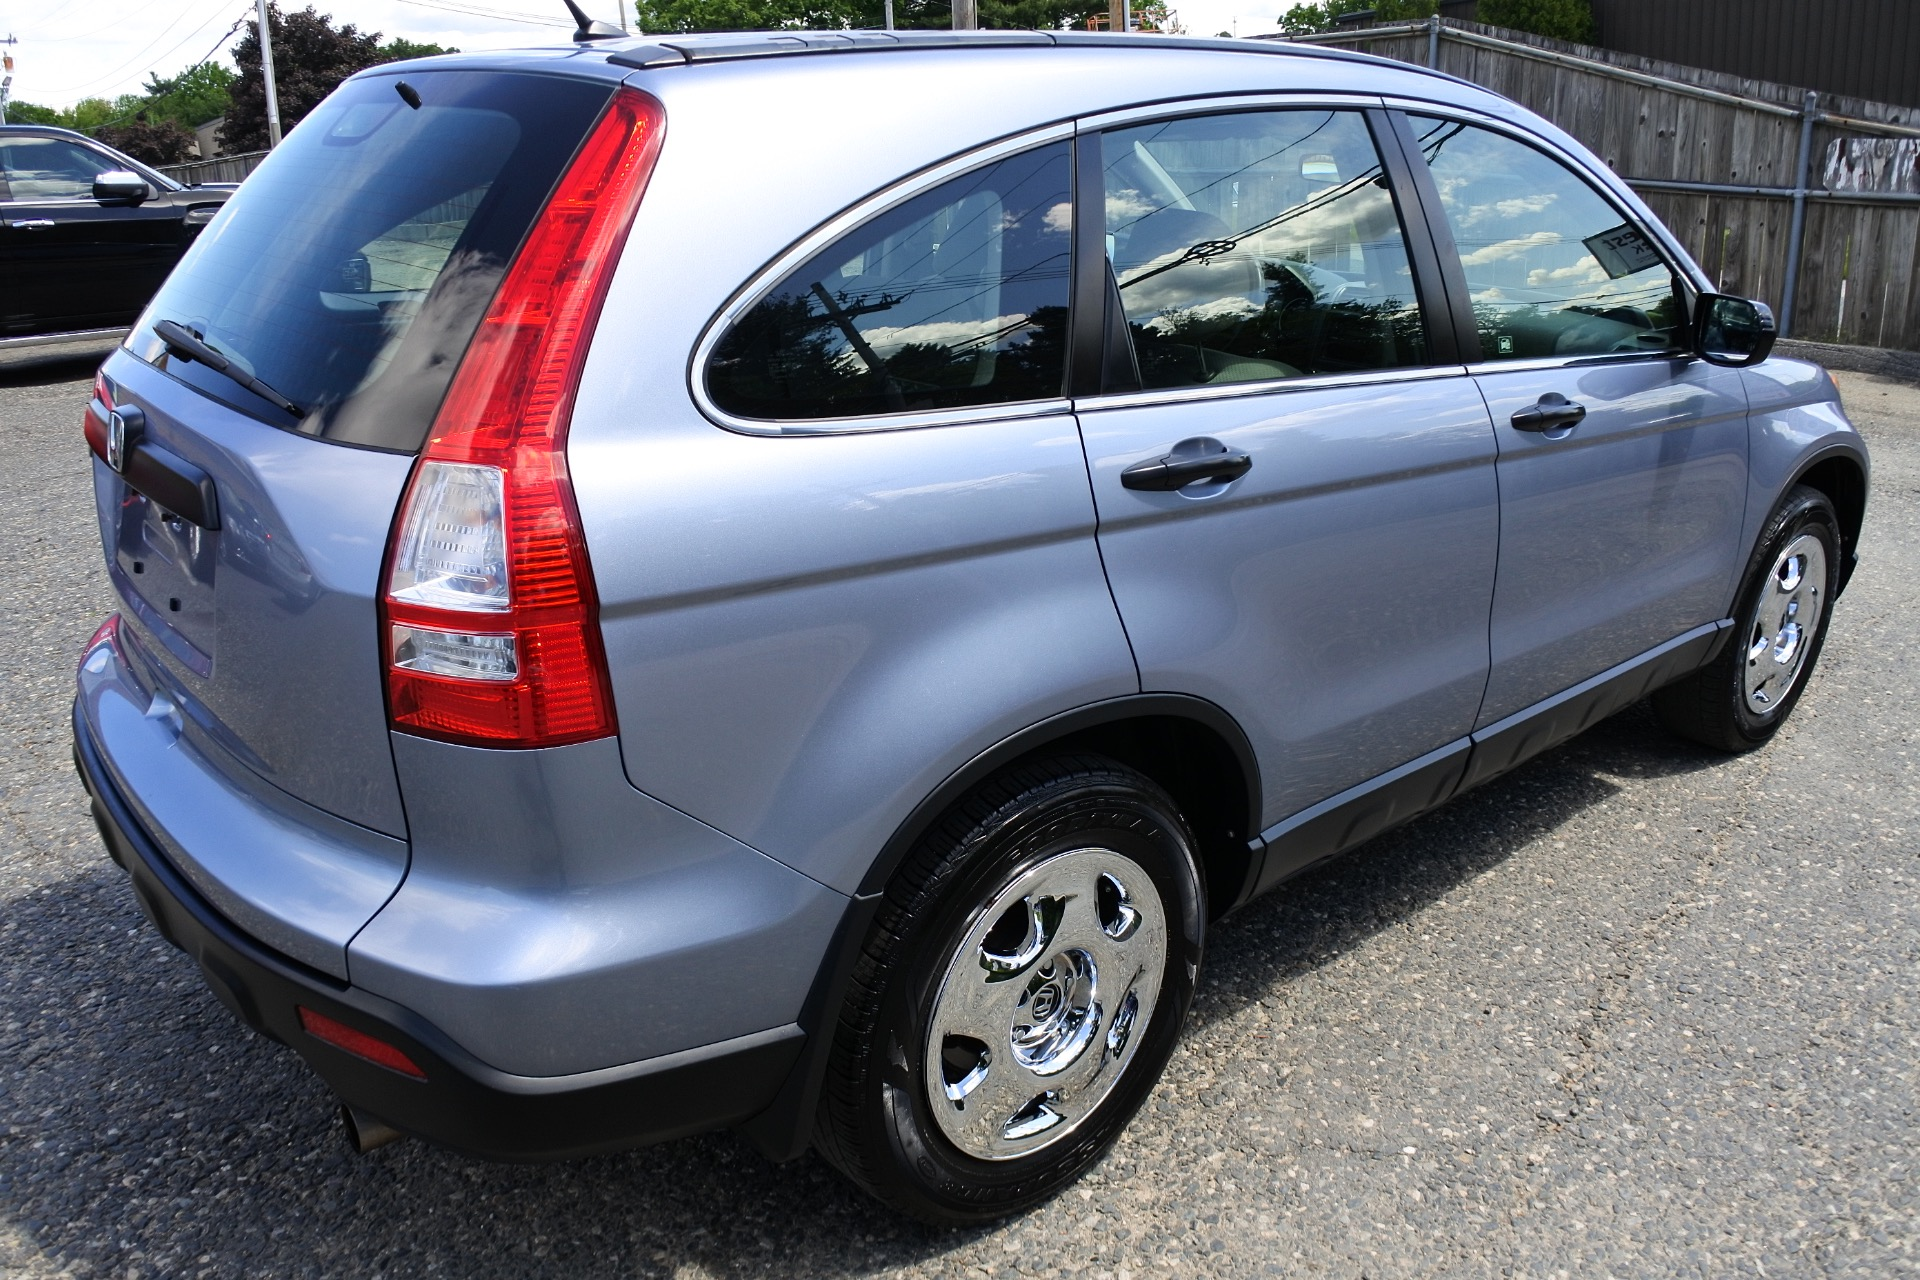 Used 2008 Honda Cr-v 4WD 5dr LX Used 2008 Honda Cr-v 4WD 5dr LX for sale  at Metro West Motorcars LLC in Shrewsbury MA 5